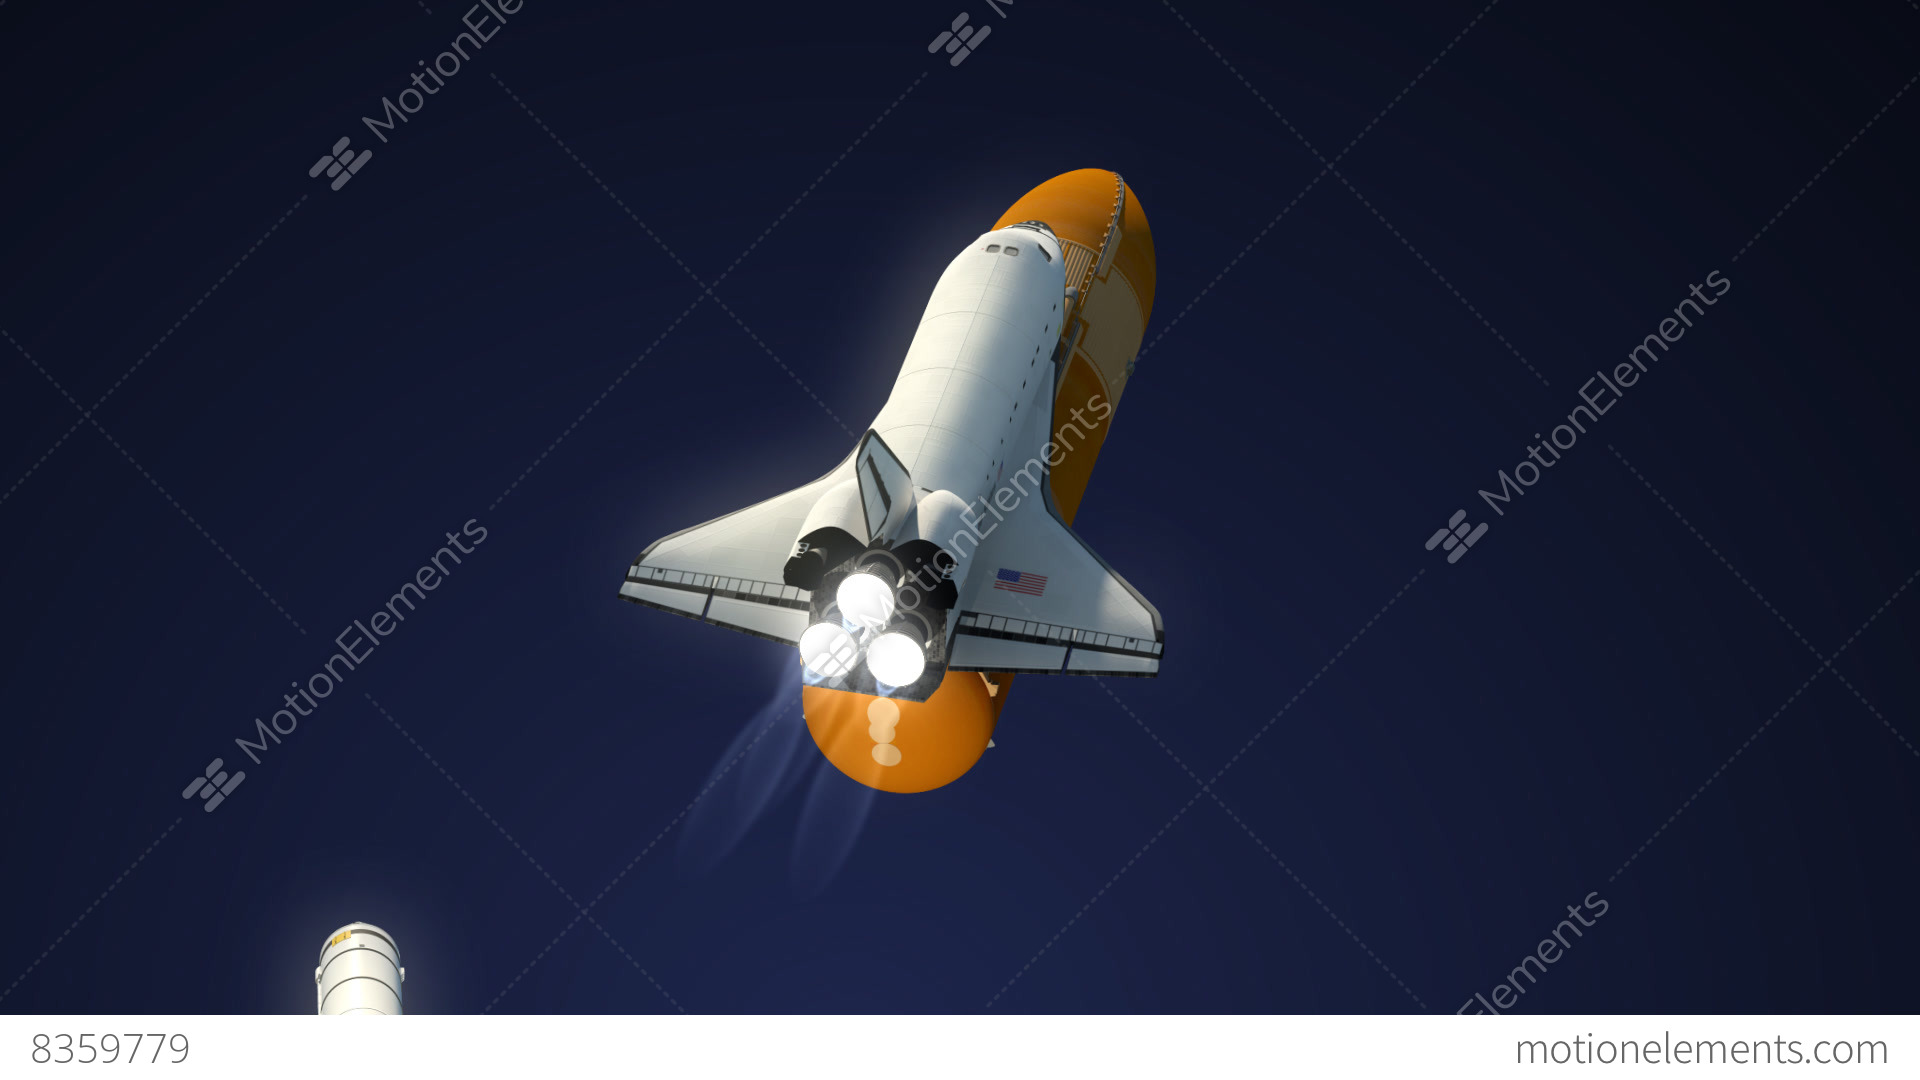 separation space shuttle - photo #2